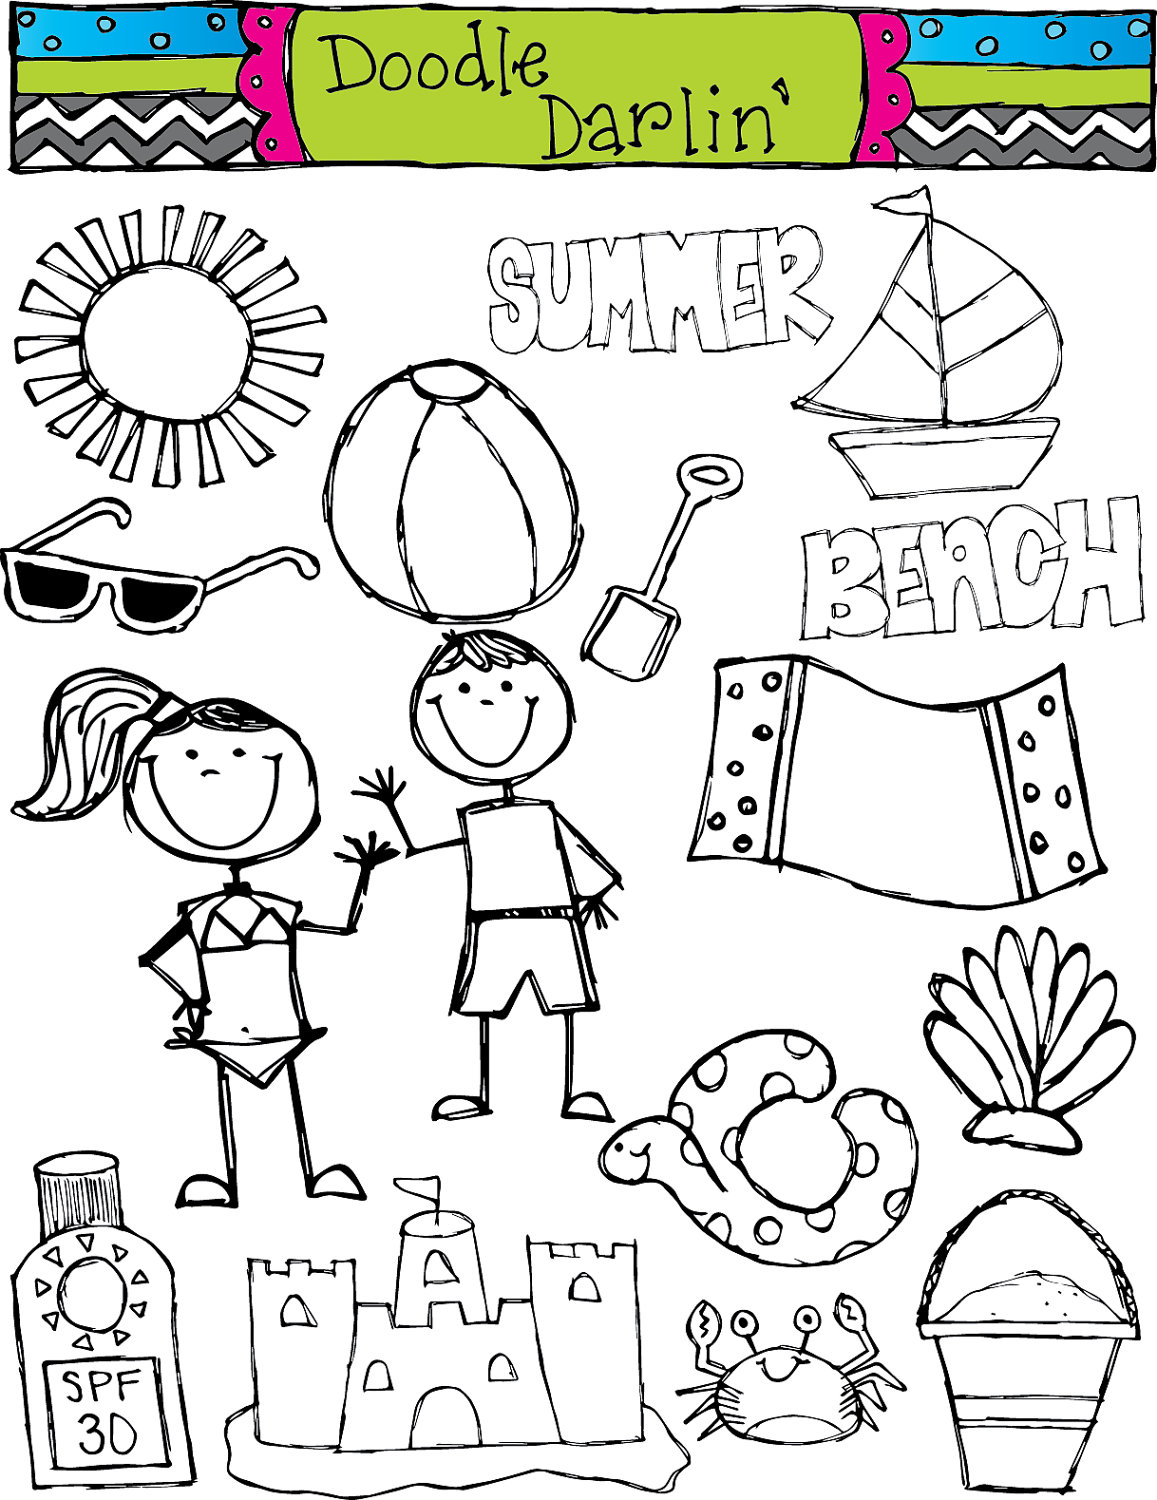 Kids at the beach clipart black and white clipart black and white stock 29+ Summer Clipart Black And White | ClipartLook clipart black and white stock